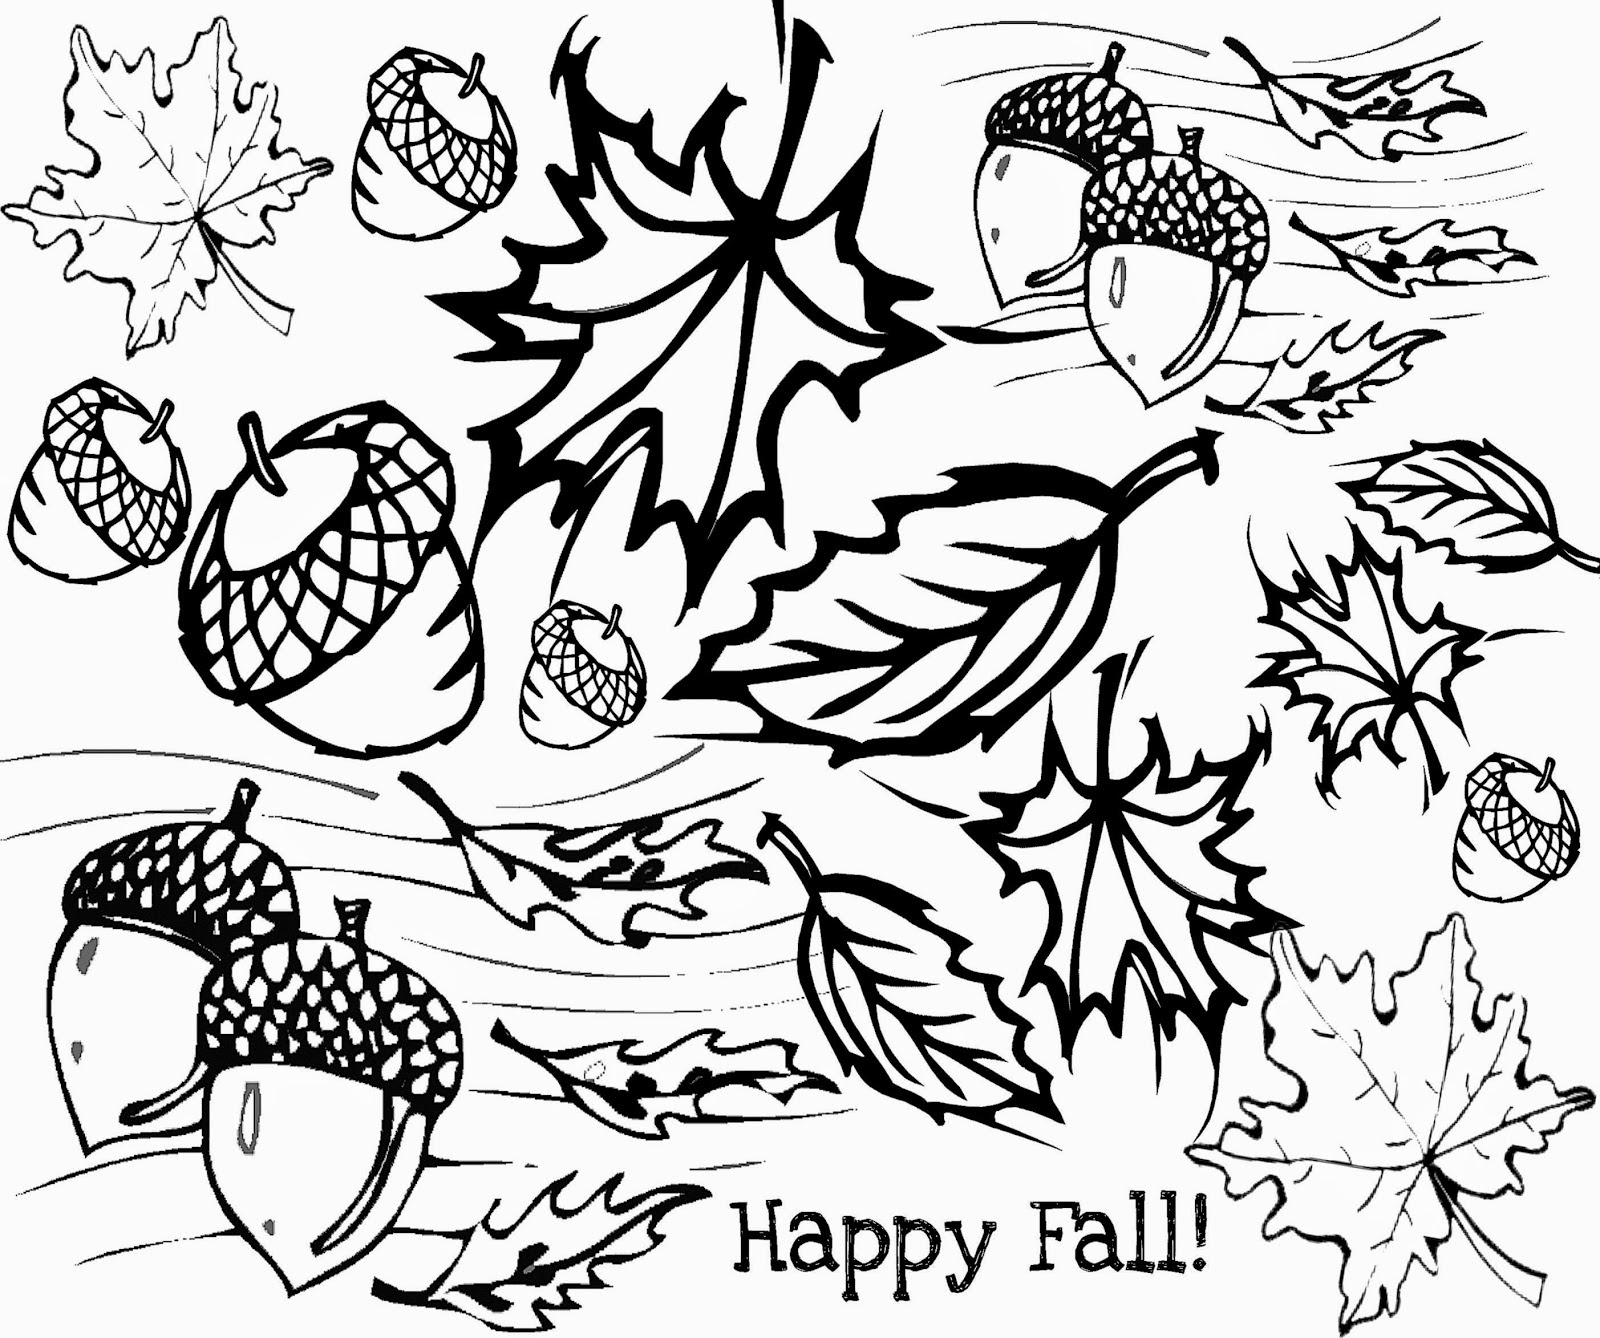 Crayola Fall Coloring Pages at GetColorings.com | Free ...